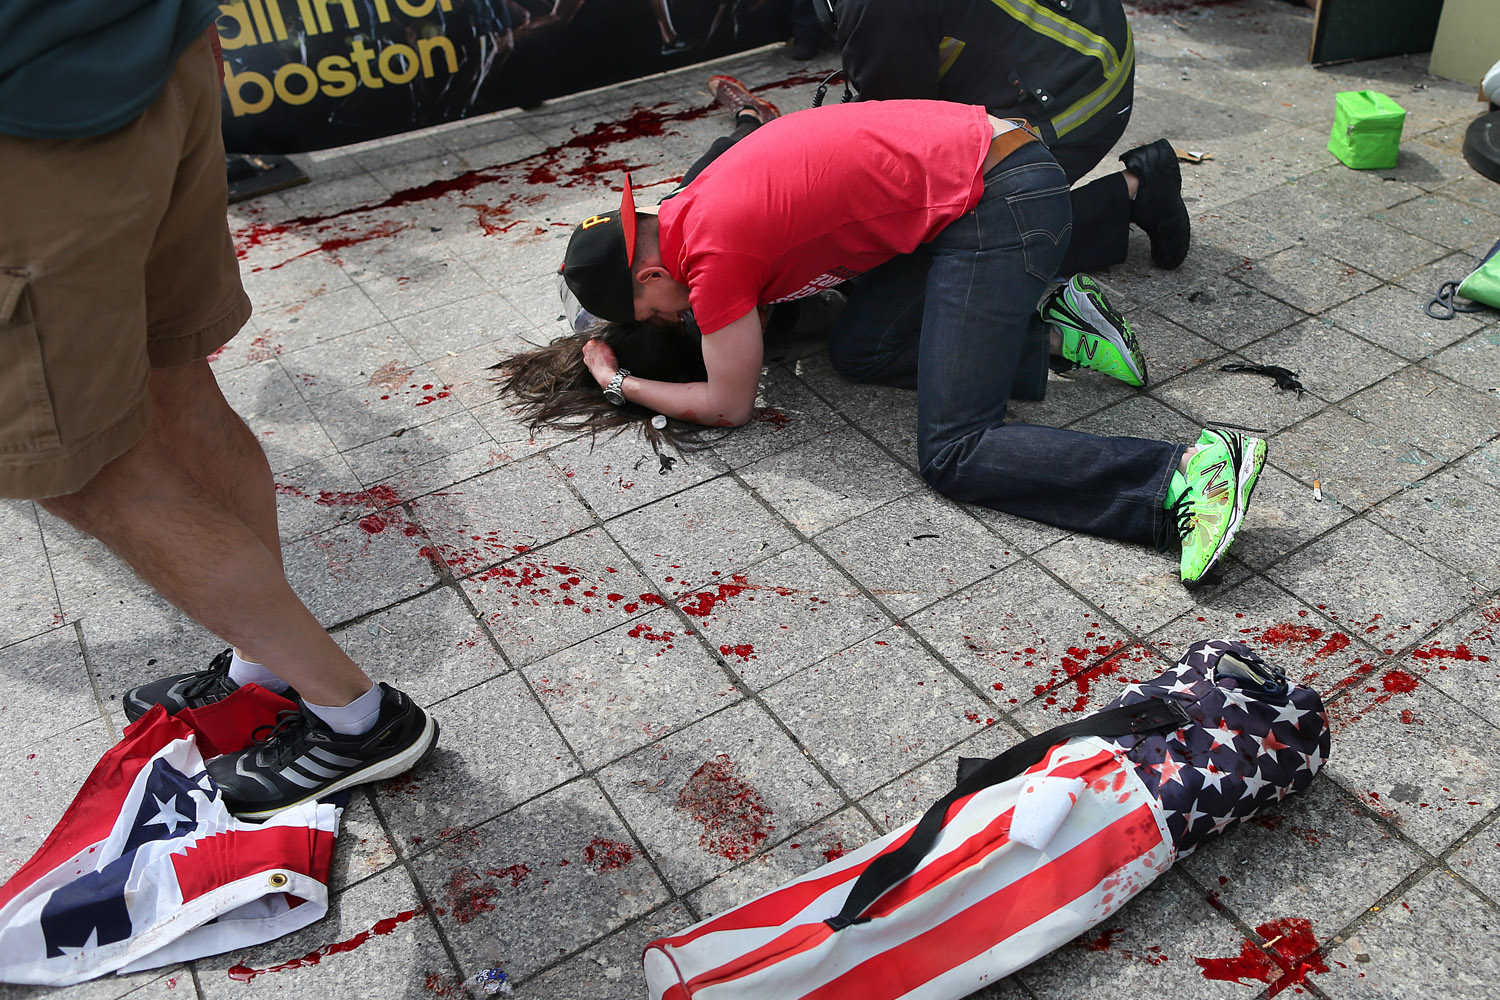 April 15, 2013. A man comforts a victim on the sidewalk at the scene of the first explosion near the finish line of the 117th Boston Marathon.